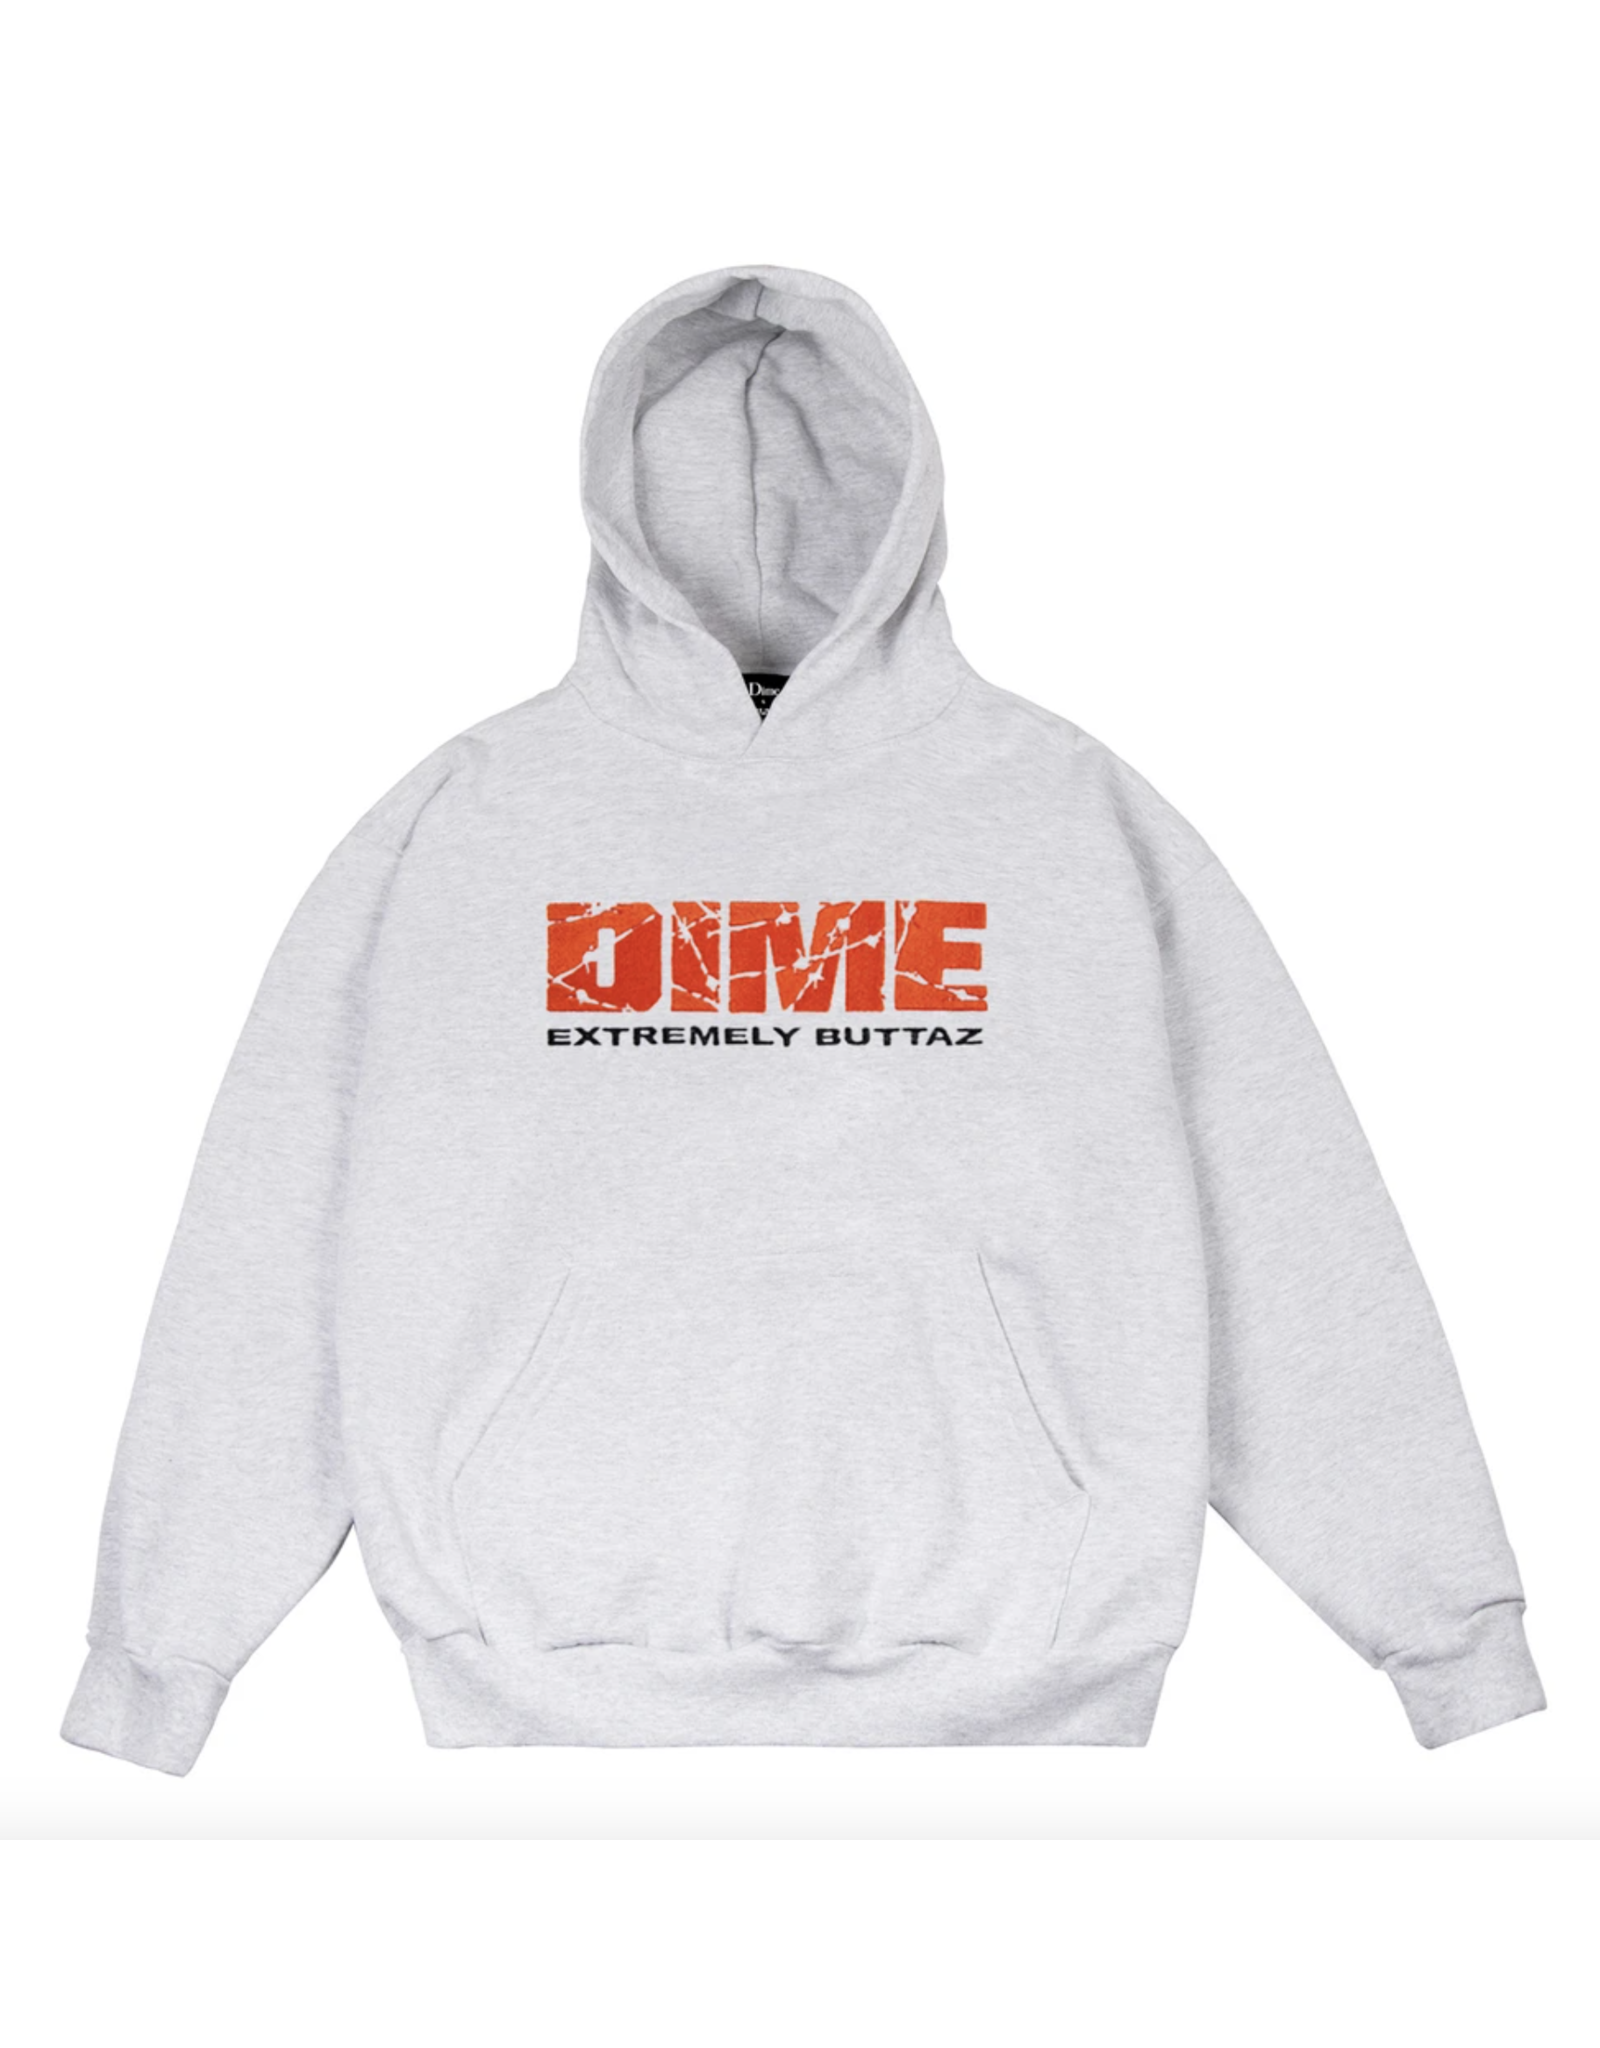 Dime Extremely Buttaz Hoodie - Ash Grey